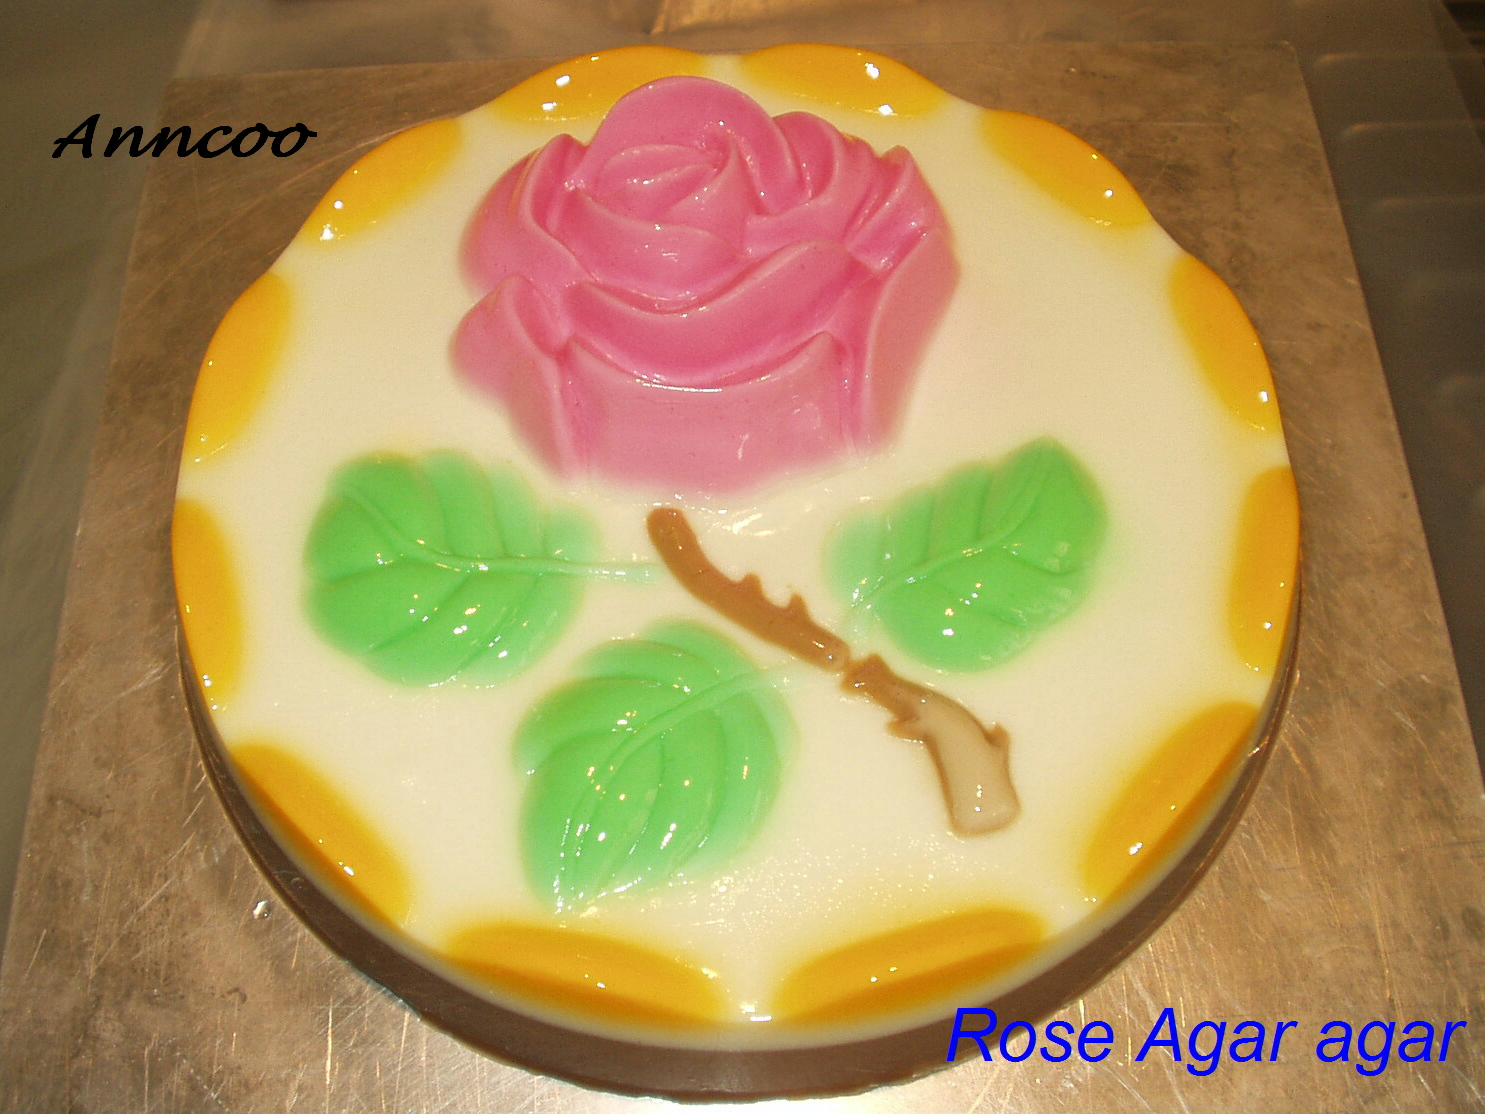 Anncoo Journal - Come for Quick and Easy Recipes: Agar